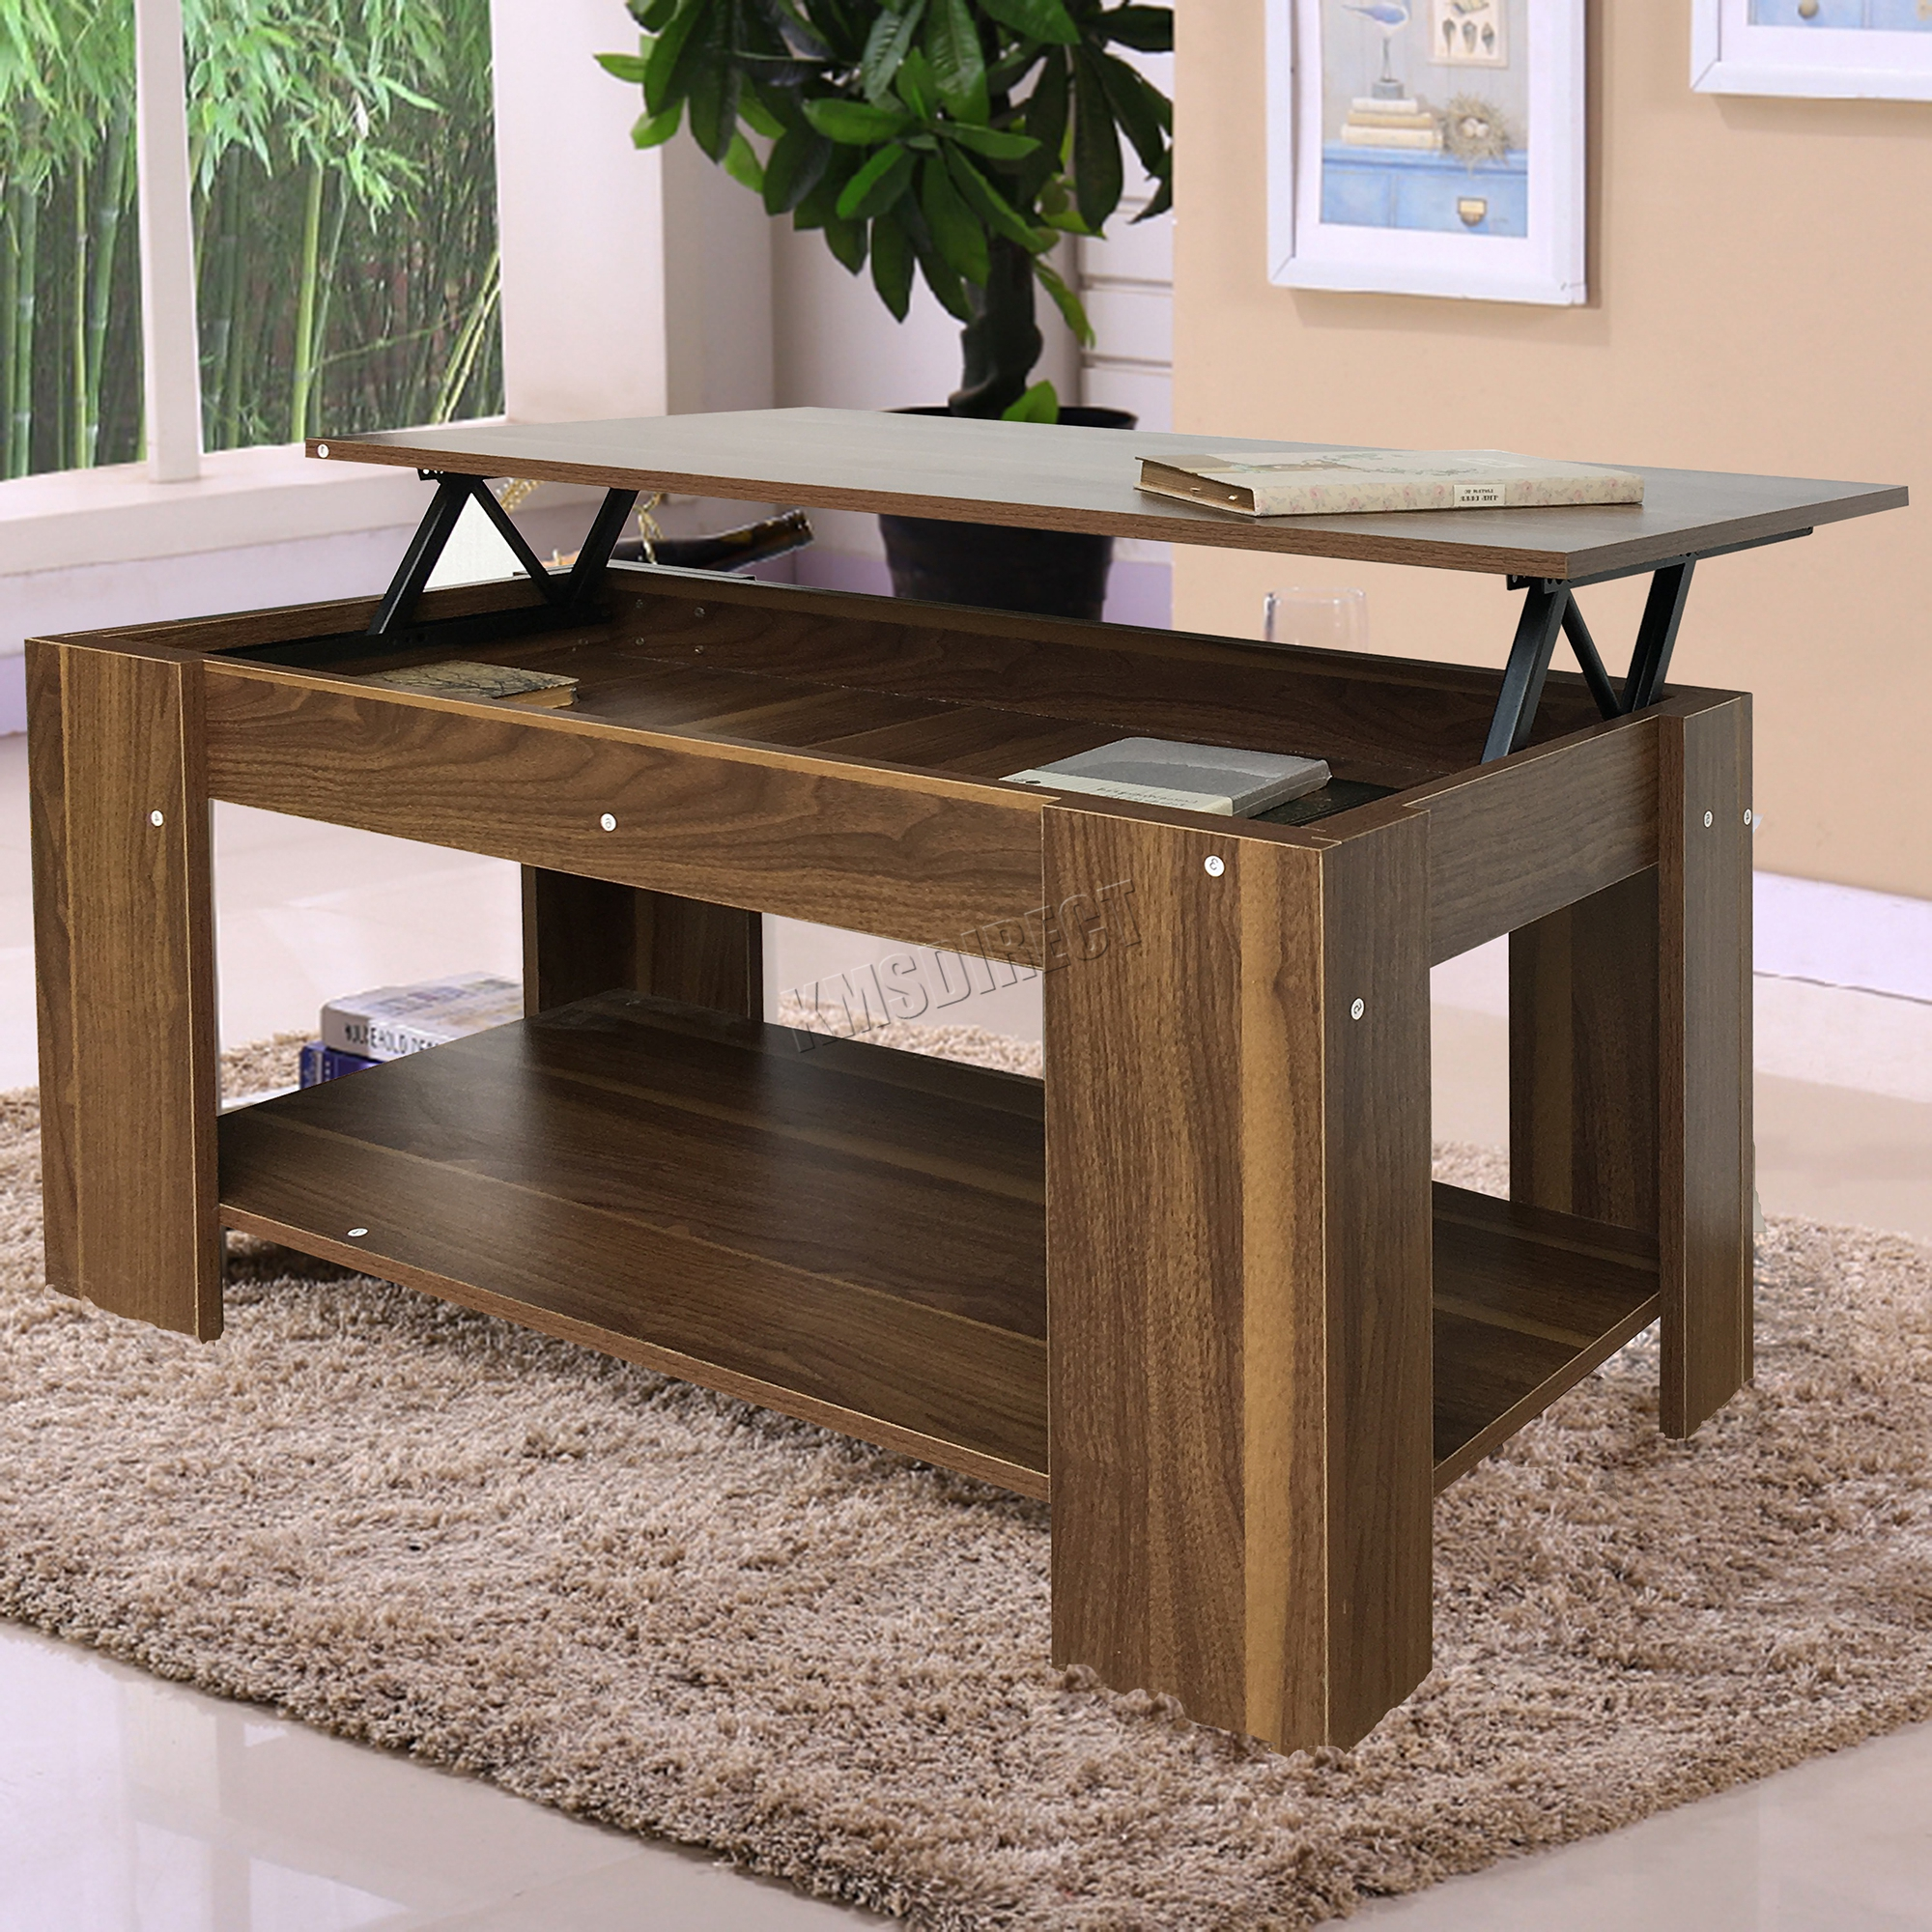 best coffee compartment and espresso furniture top products w lift storage hidden modern tabletop with home table choice